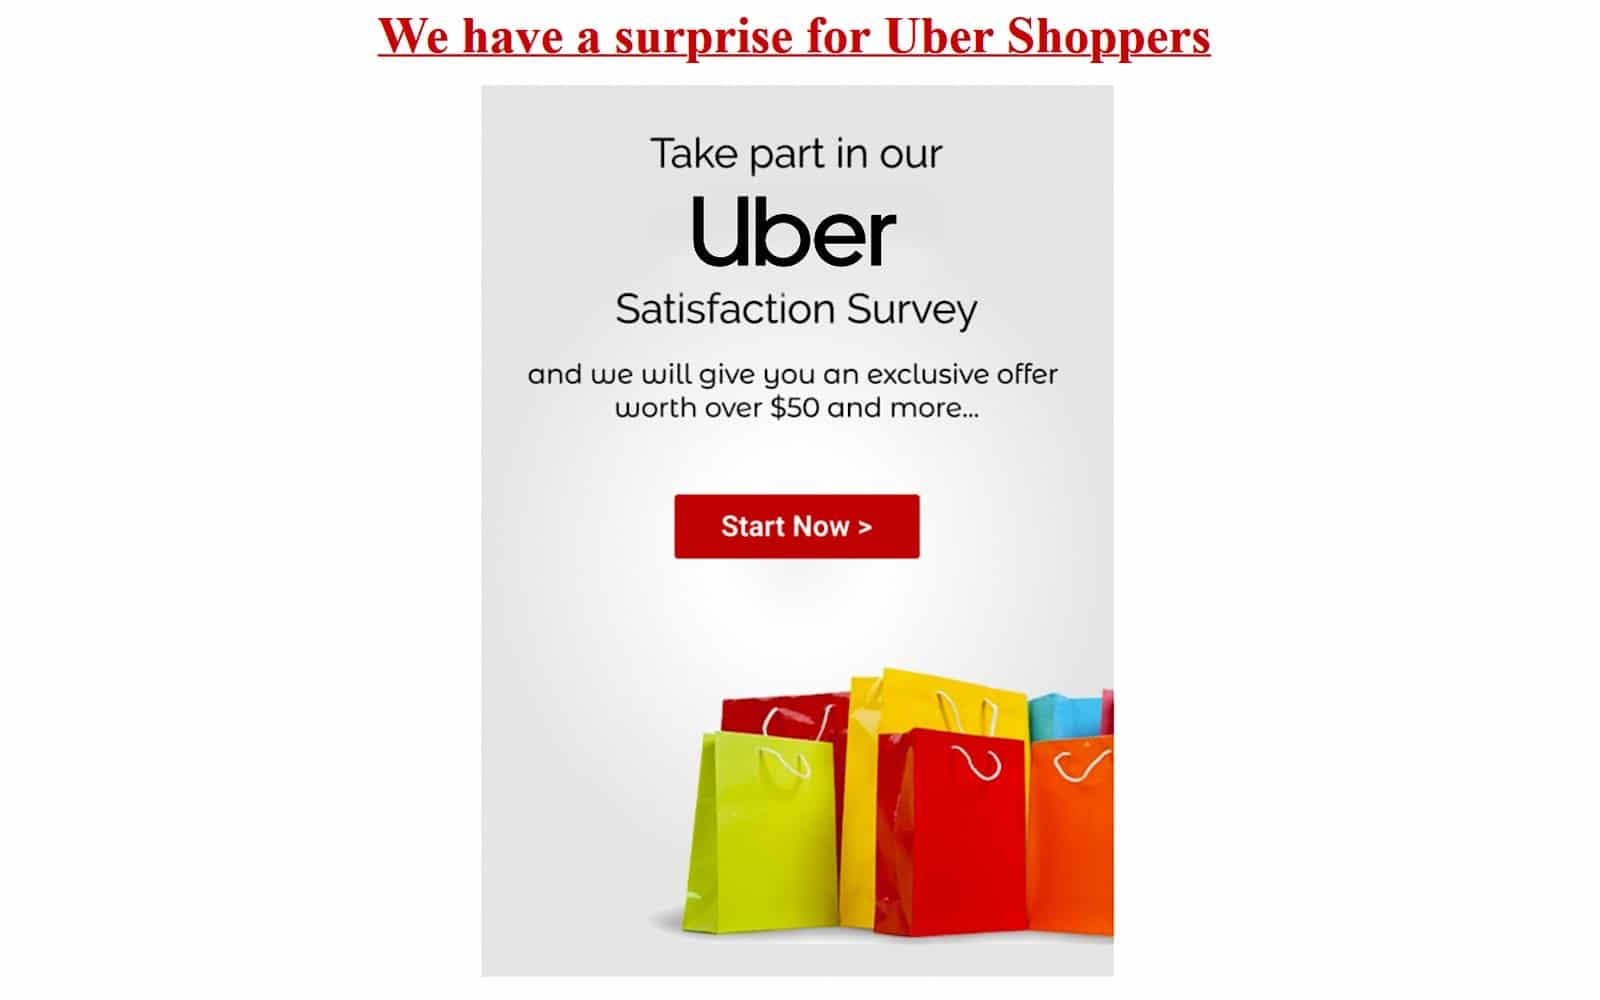 The Uber Shoppers scam email